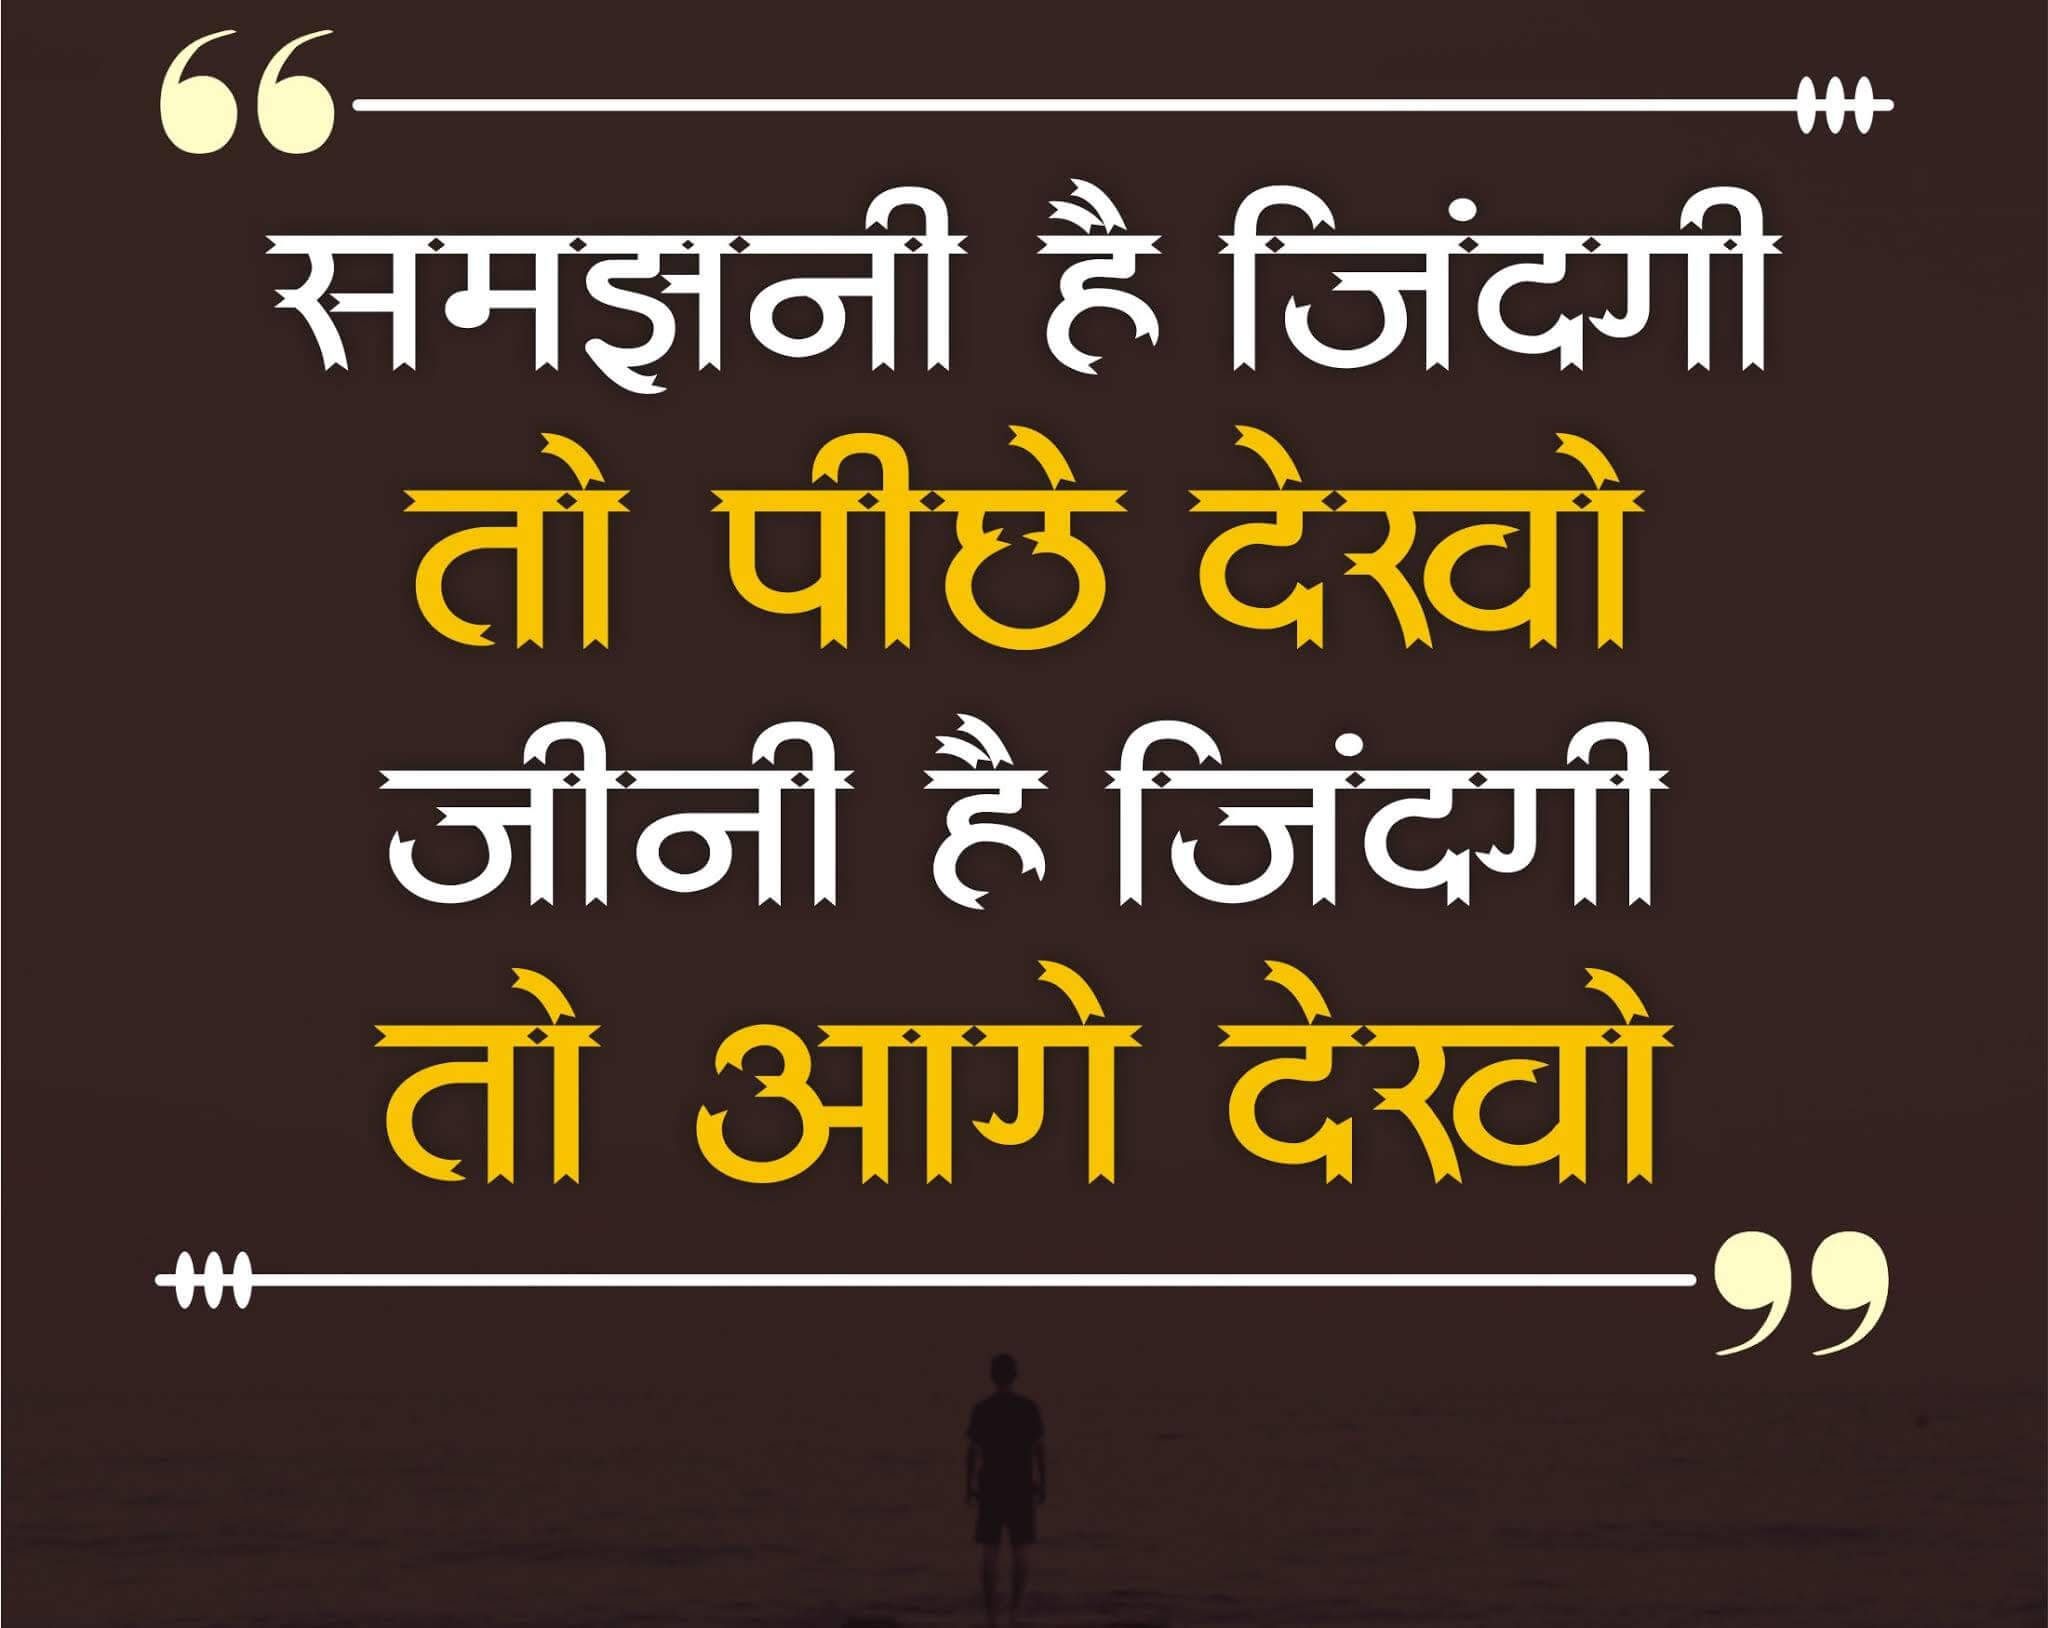 110 Hindi Motivational Quotes And Thoughts ह न द